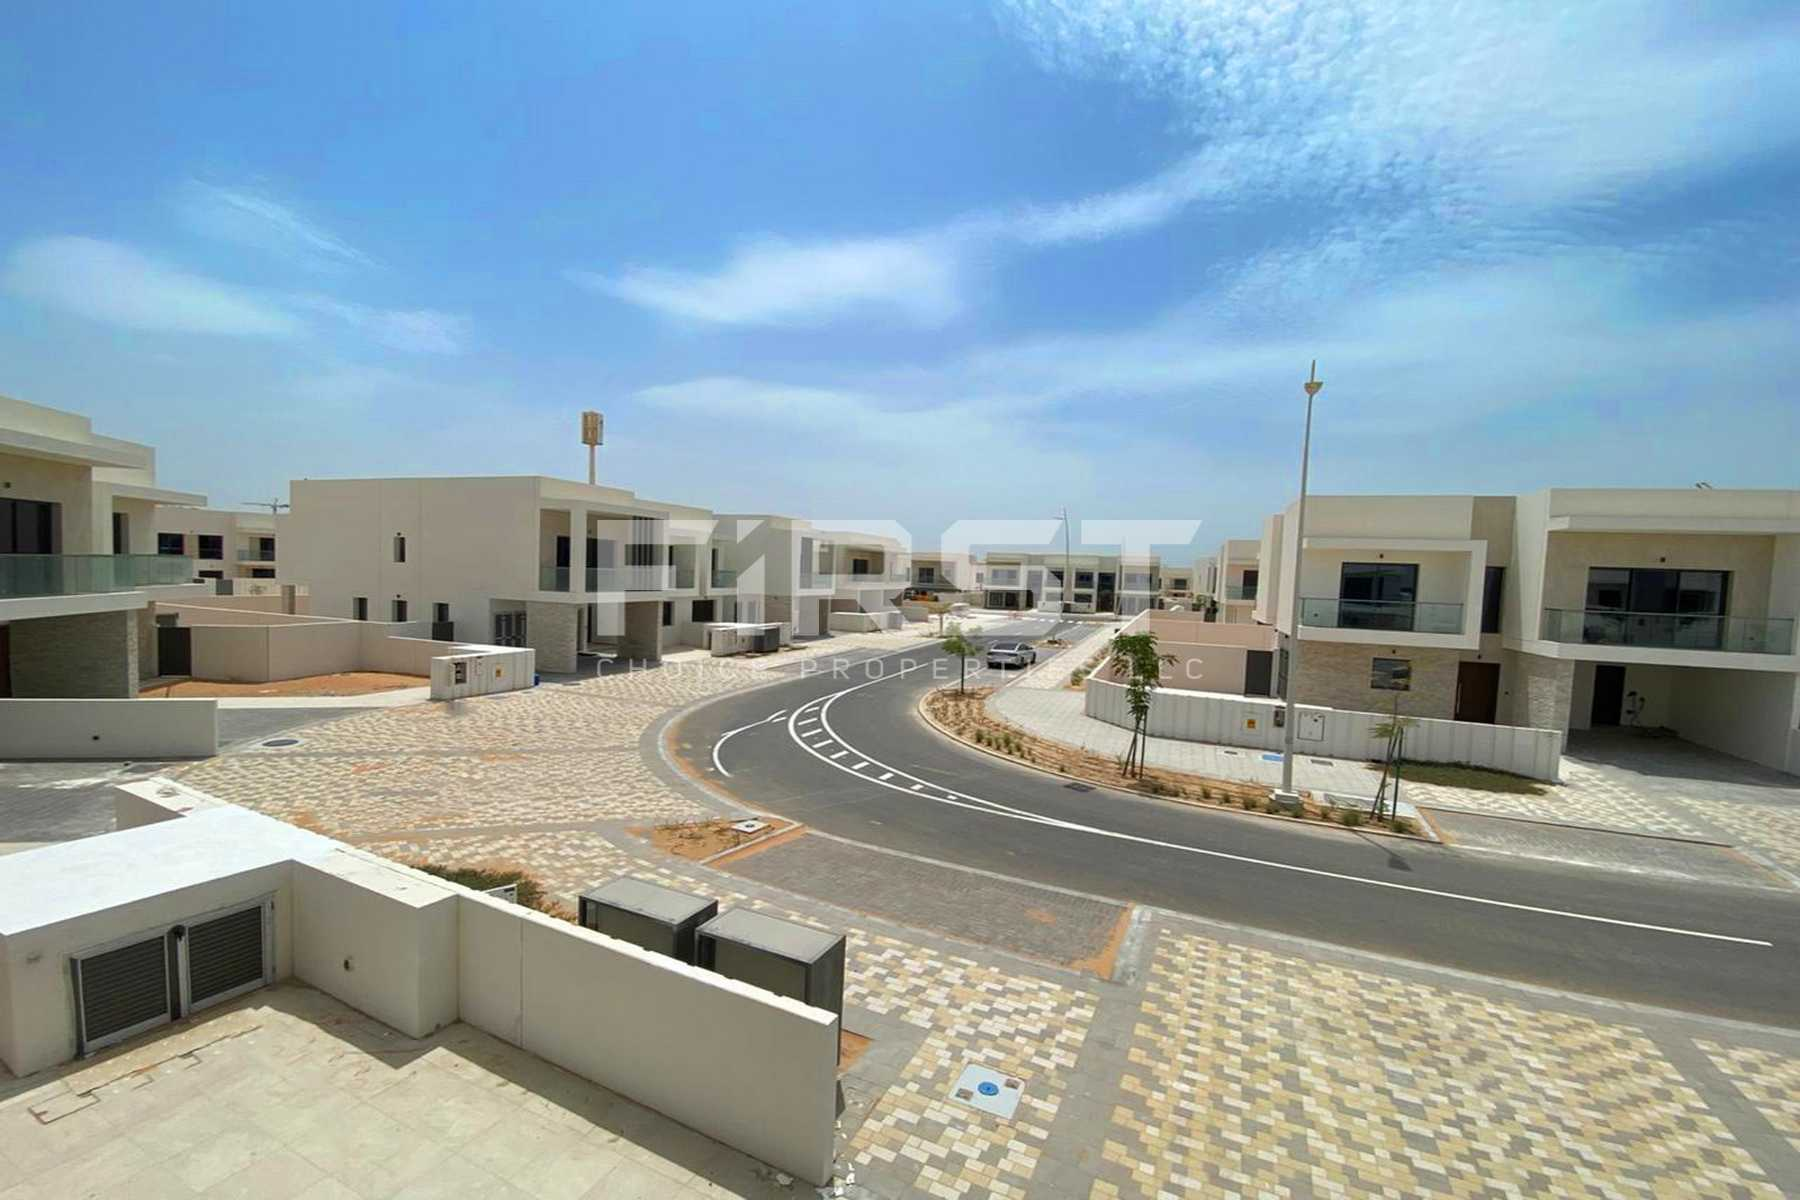 External Photo of 4 Bedroom Duplex Type 4Y in Yas Acres Yas Island Abu Dhabi UAE (10).jpg